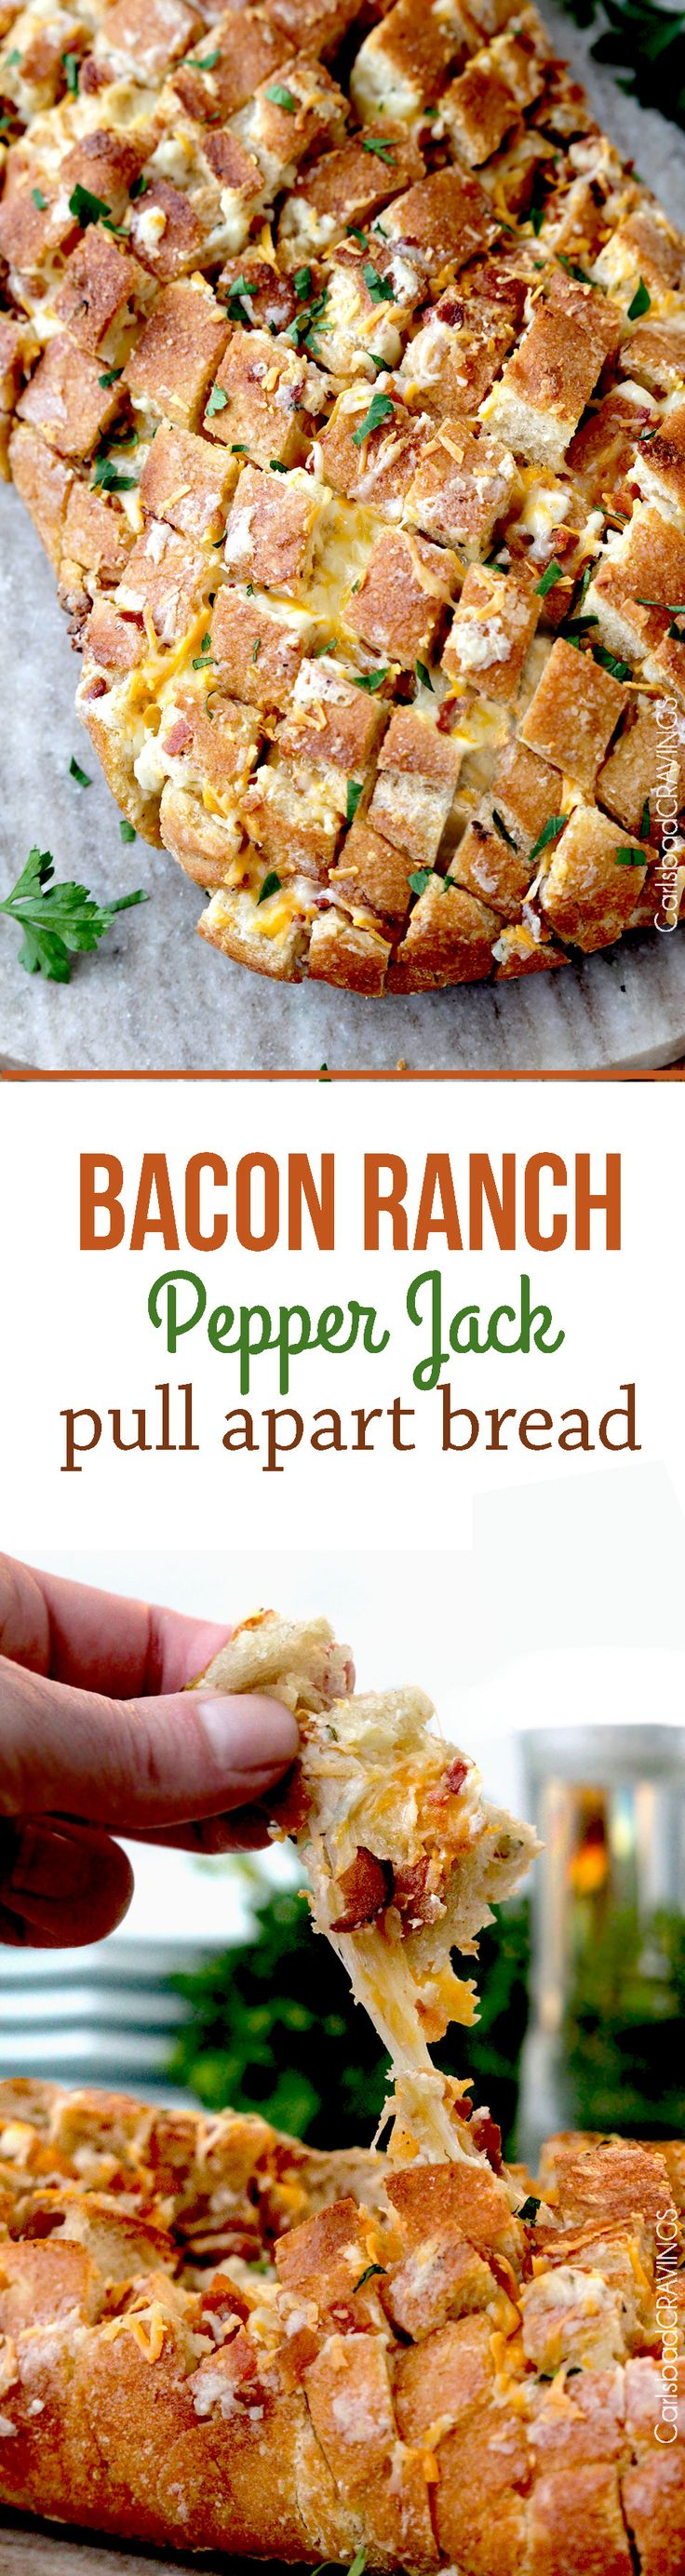 Bacon Ranch Pepper Jack Pull Apart Bread - drenched in buttery ranch cream cheese then stuffed with bacon, sharp cheddar and pepper jack cheese. Simple,all the prep can be done beforehand and INSANELY delicious!